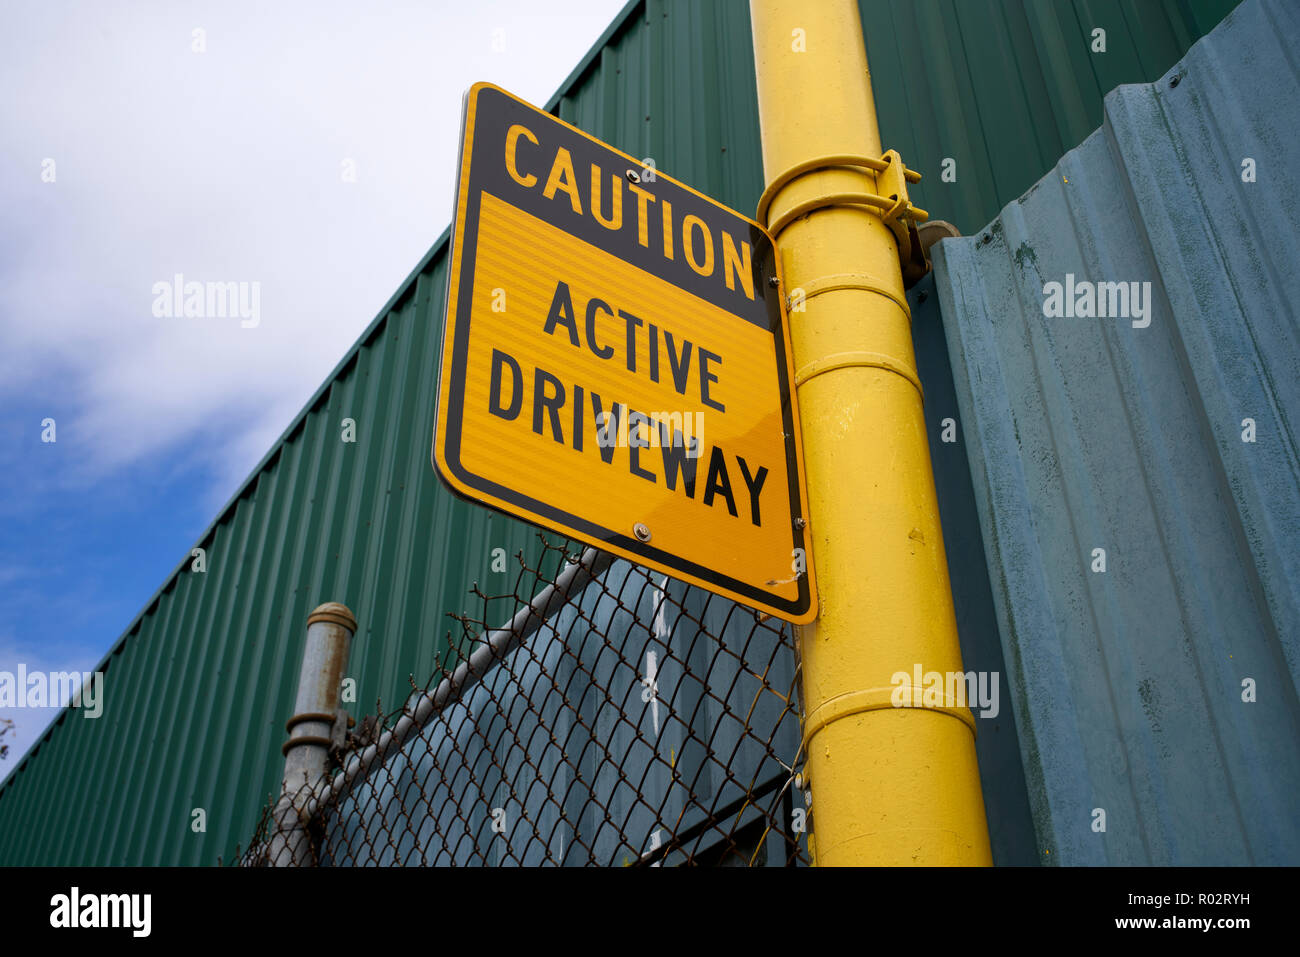 Yellow Caution, active driveway, traffic sign - Stock Image